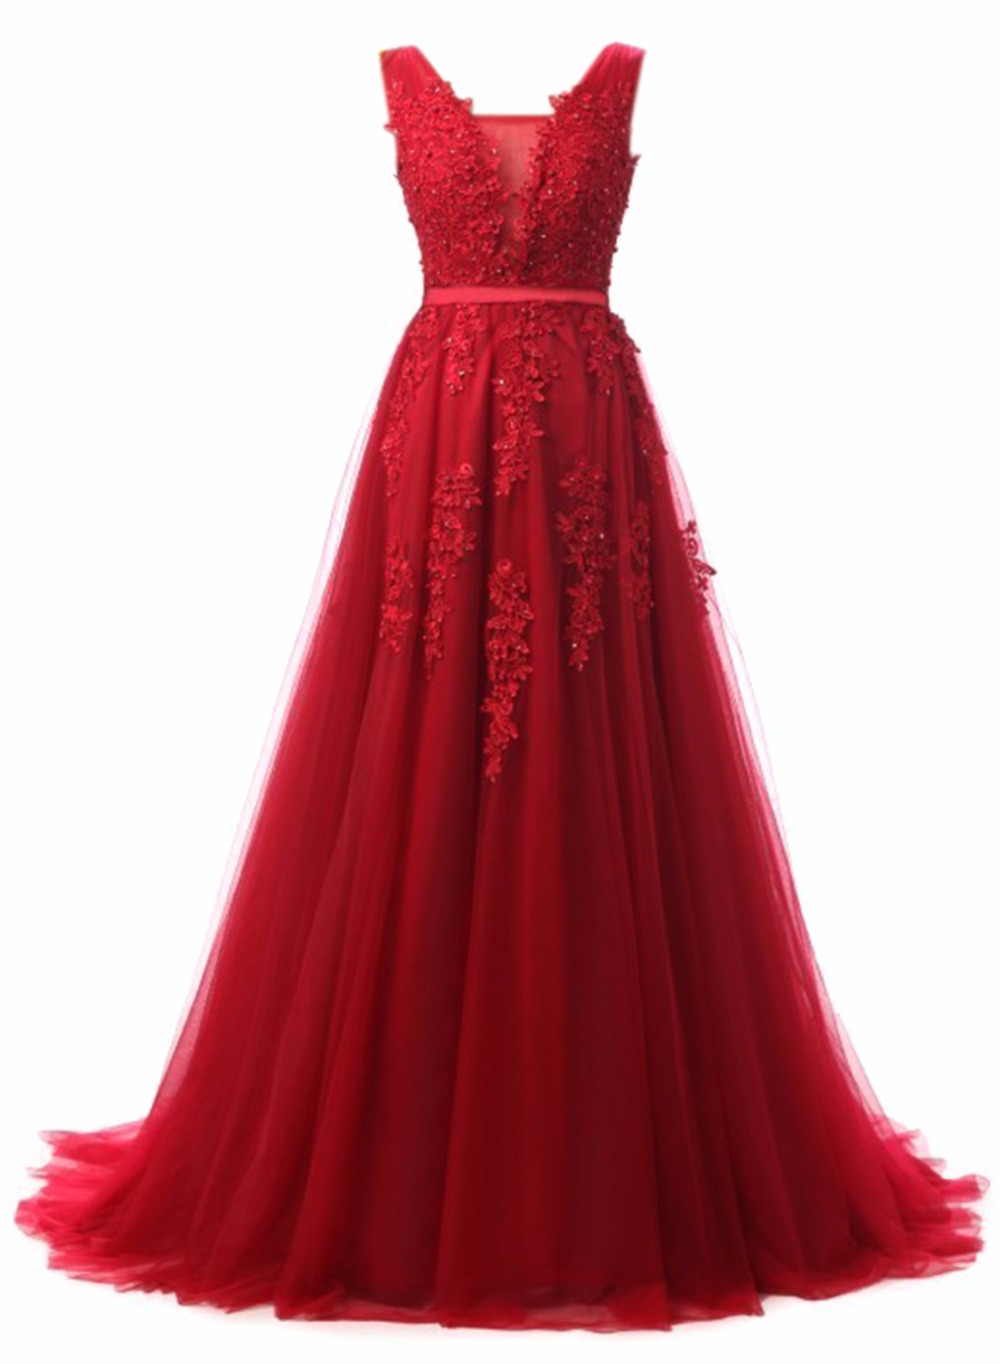 Bealegantom 2018 New Cheap Pink Red Blue Prom Dresses